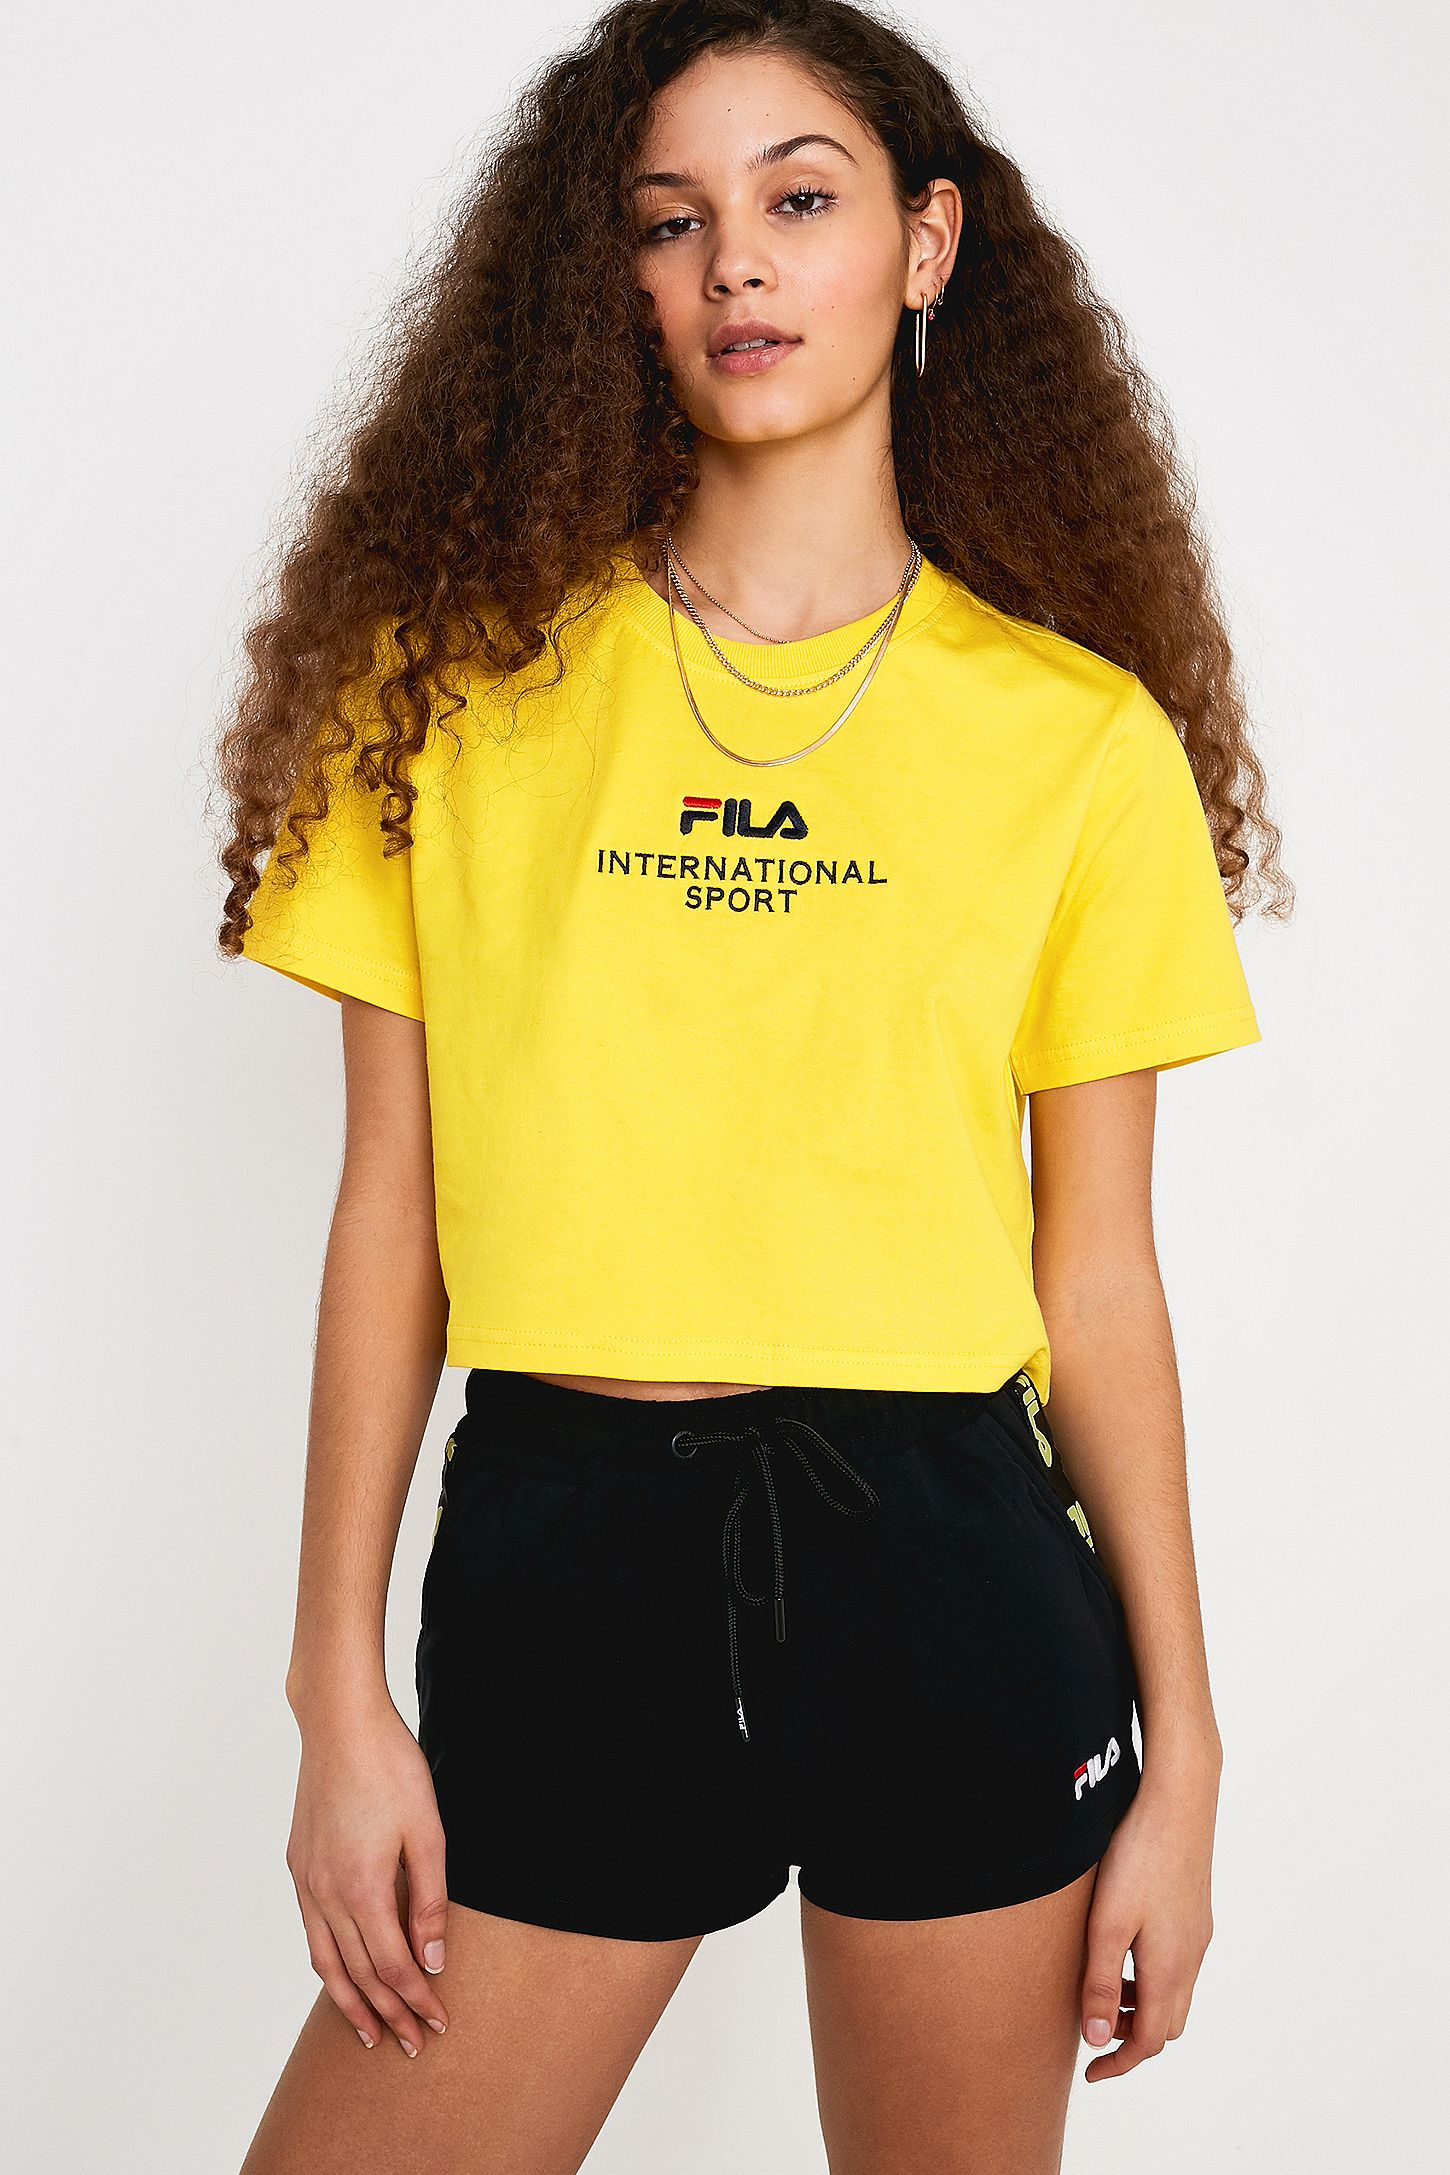 7e7feed01b72d3 FILA Philis Yellow Crop T-Shirt | Urban Outfitters UK